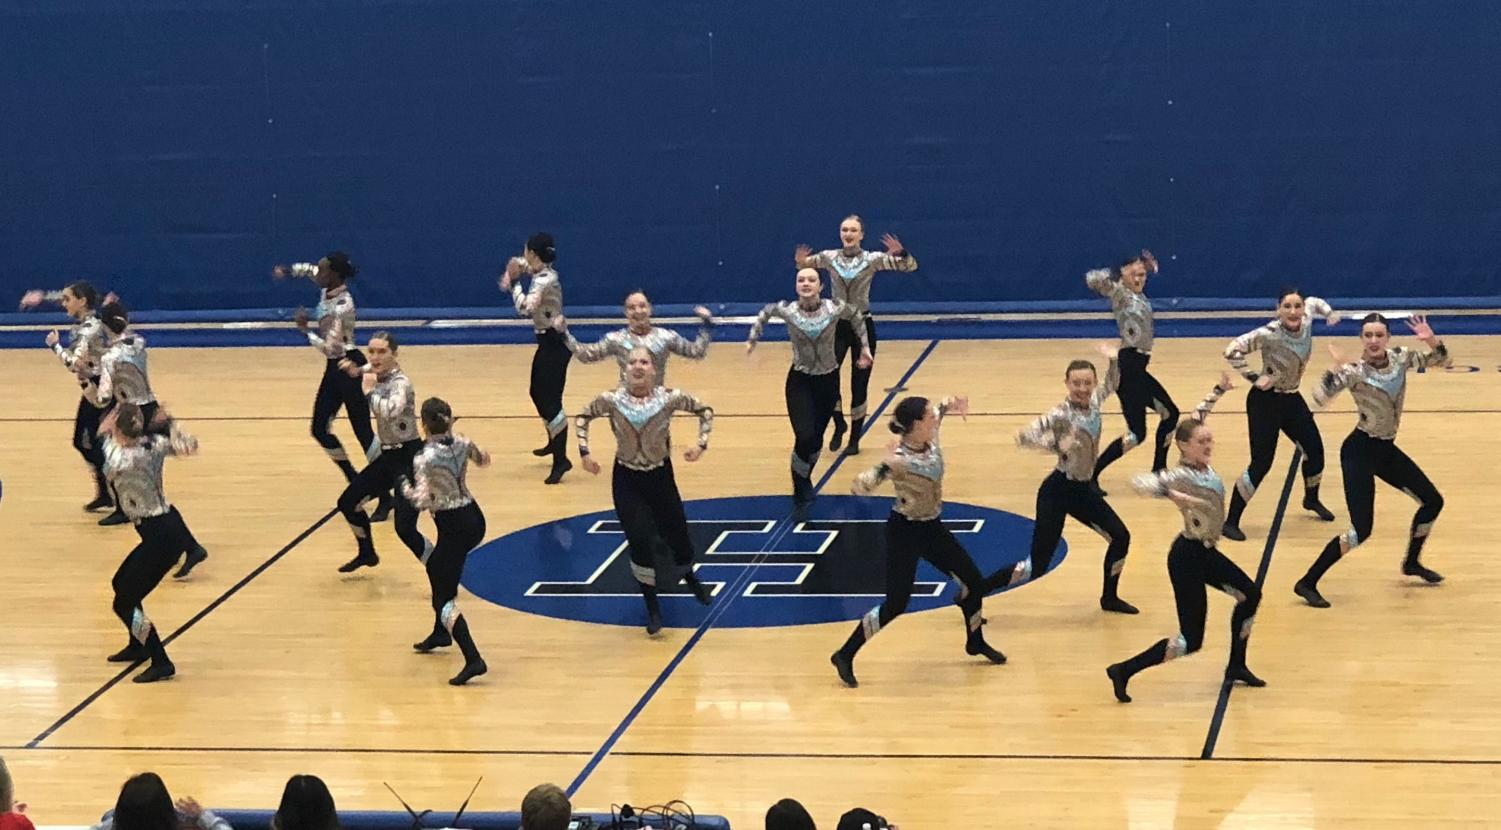 BSM dance team dancing at their first invite of the year.